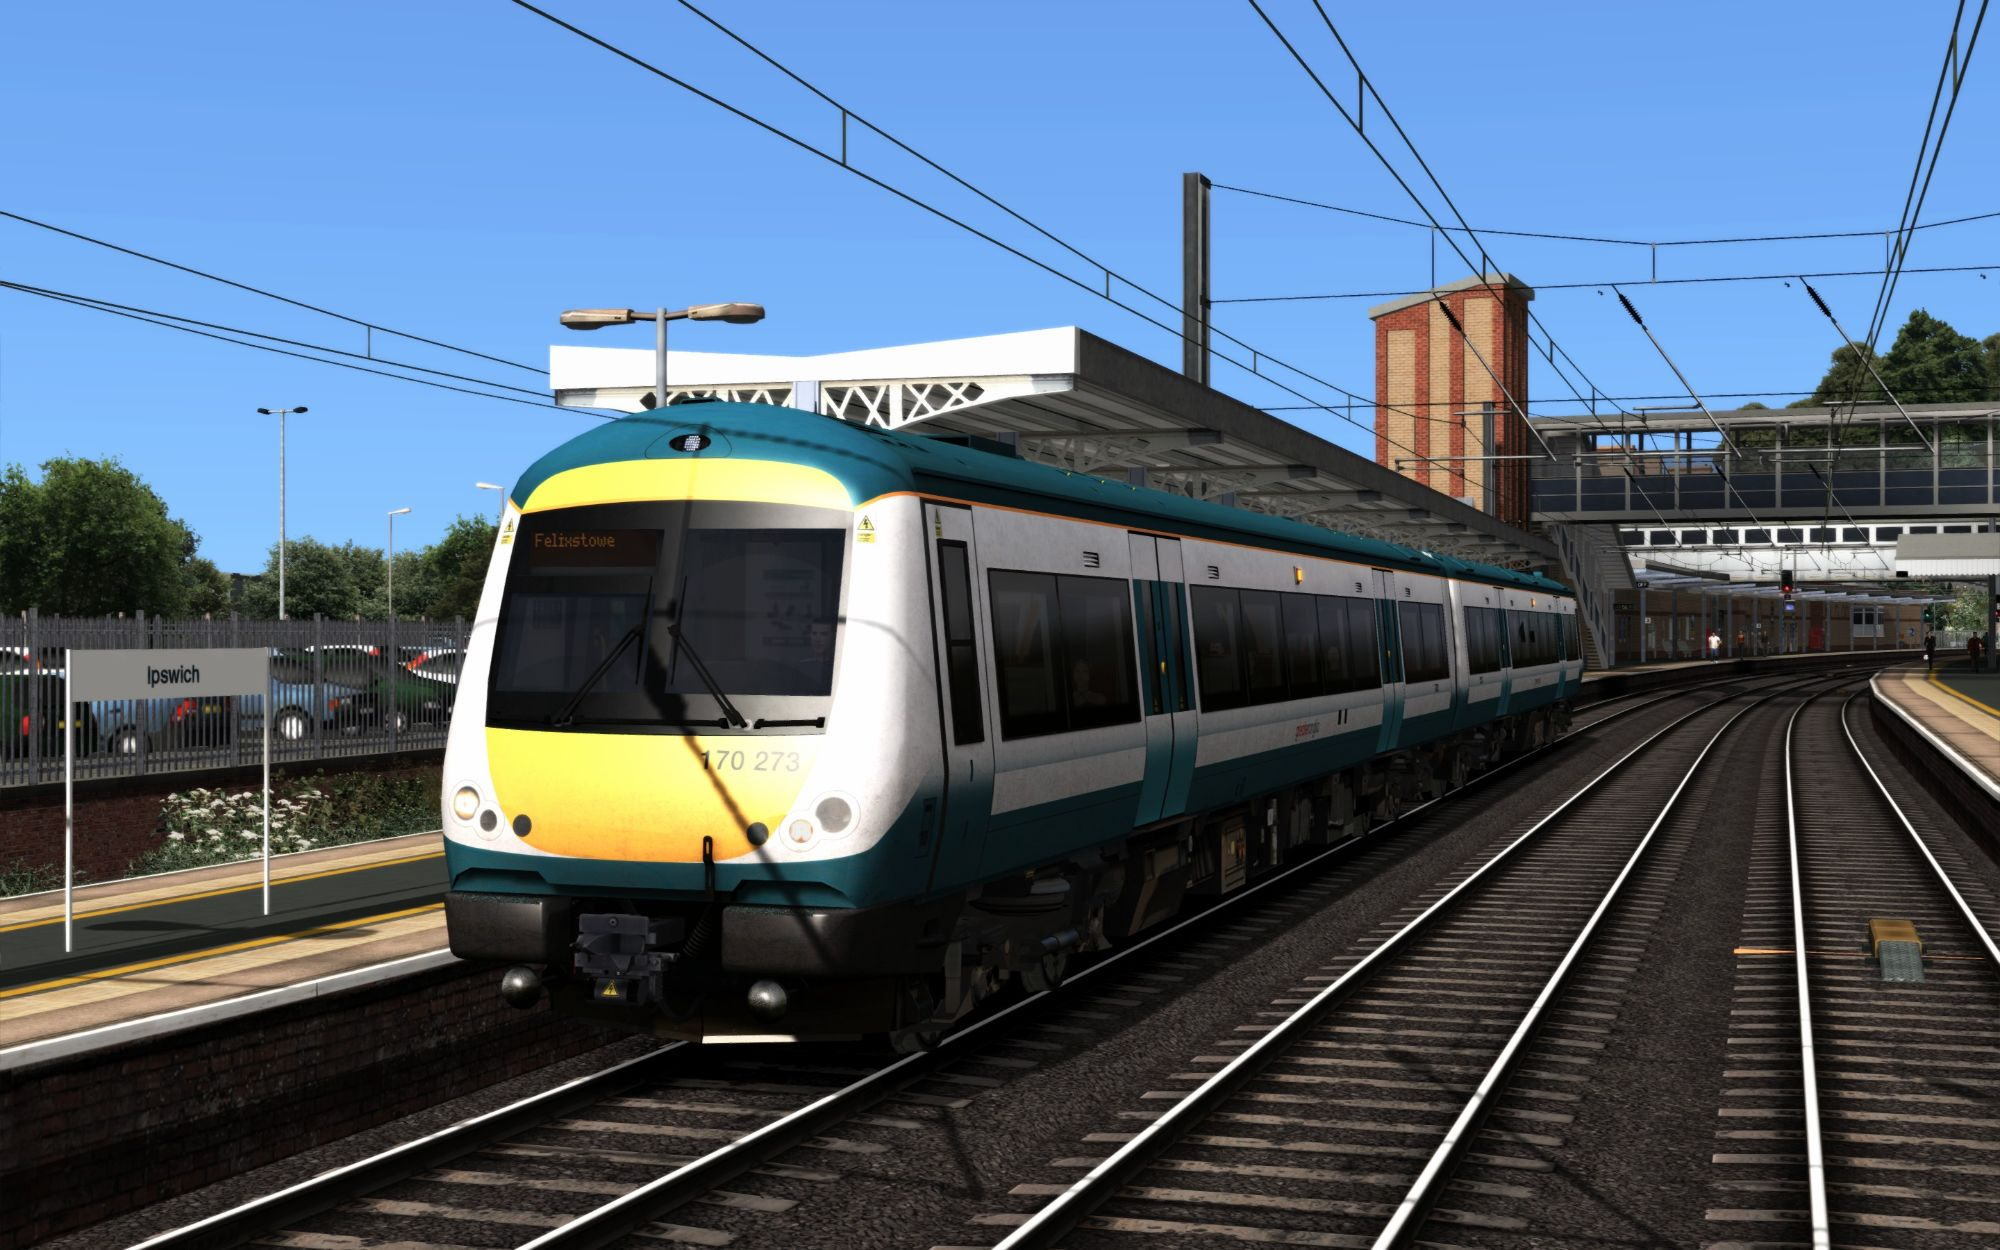 Image showing screenshot of the 2R26 - 1758 Ipswich to Felixstowe scenario